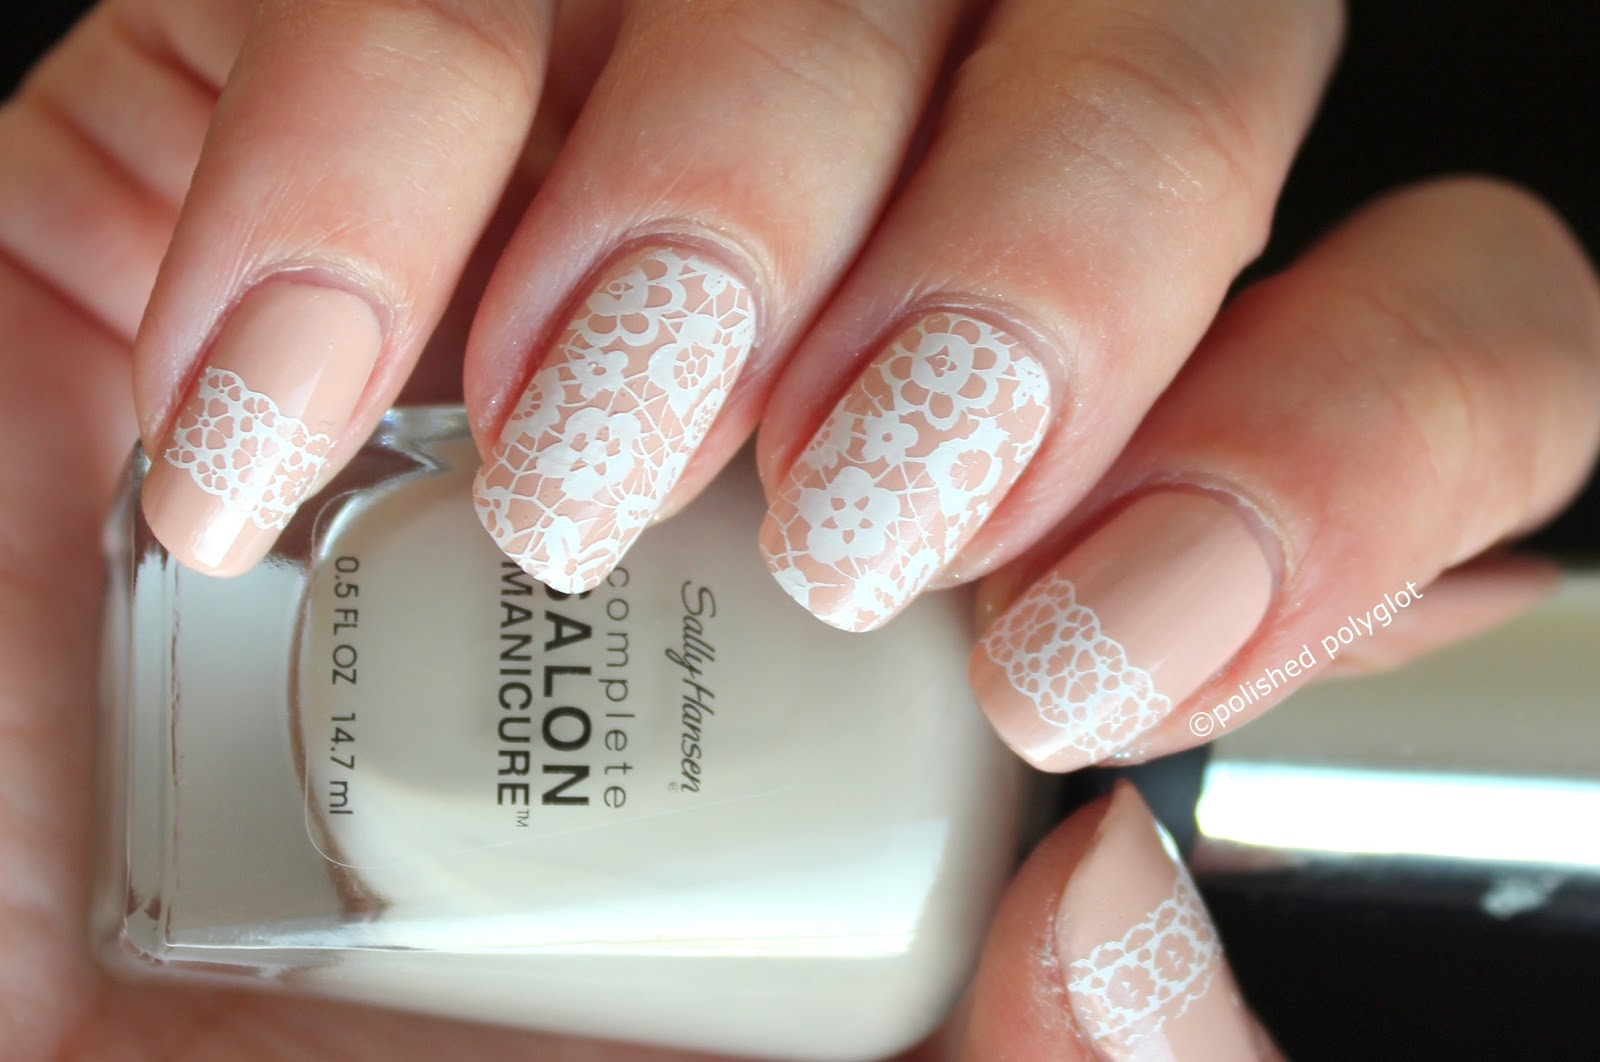 17 Lovely Bridal Nail Art Ideas for Romantic Look - Style Motivation